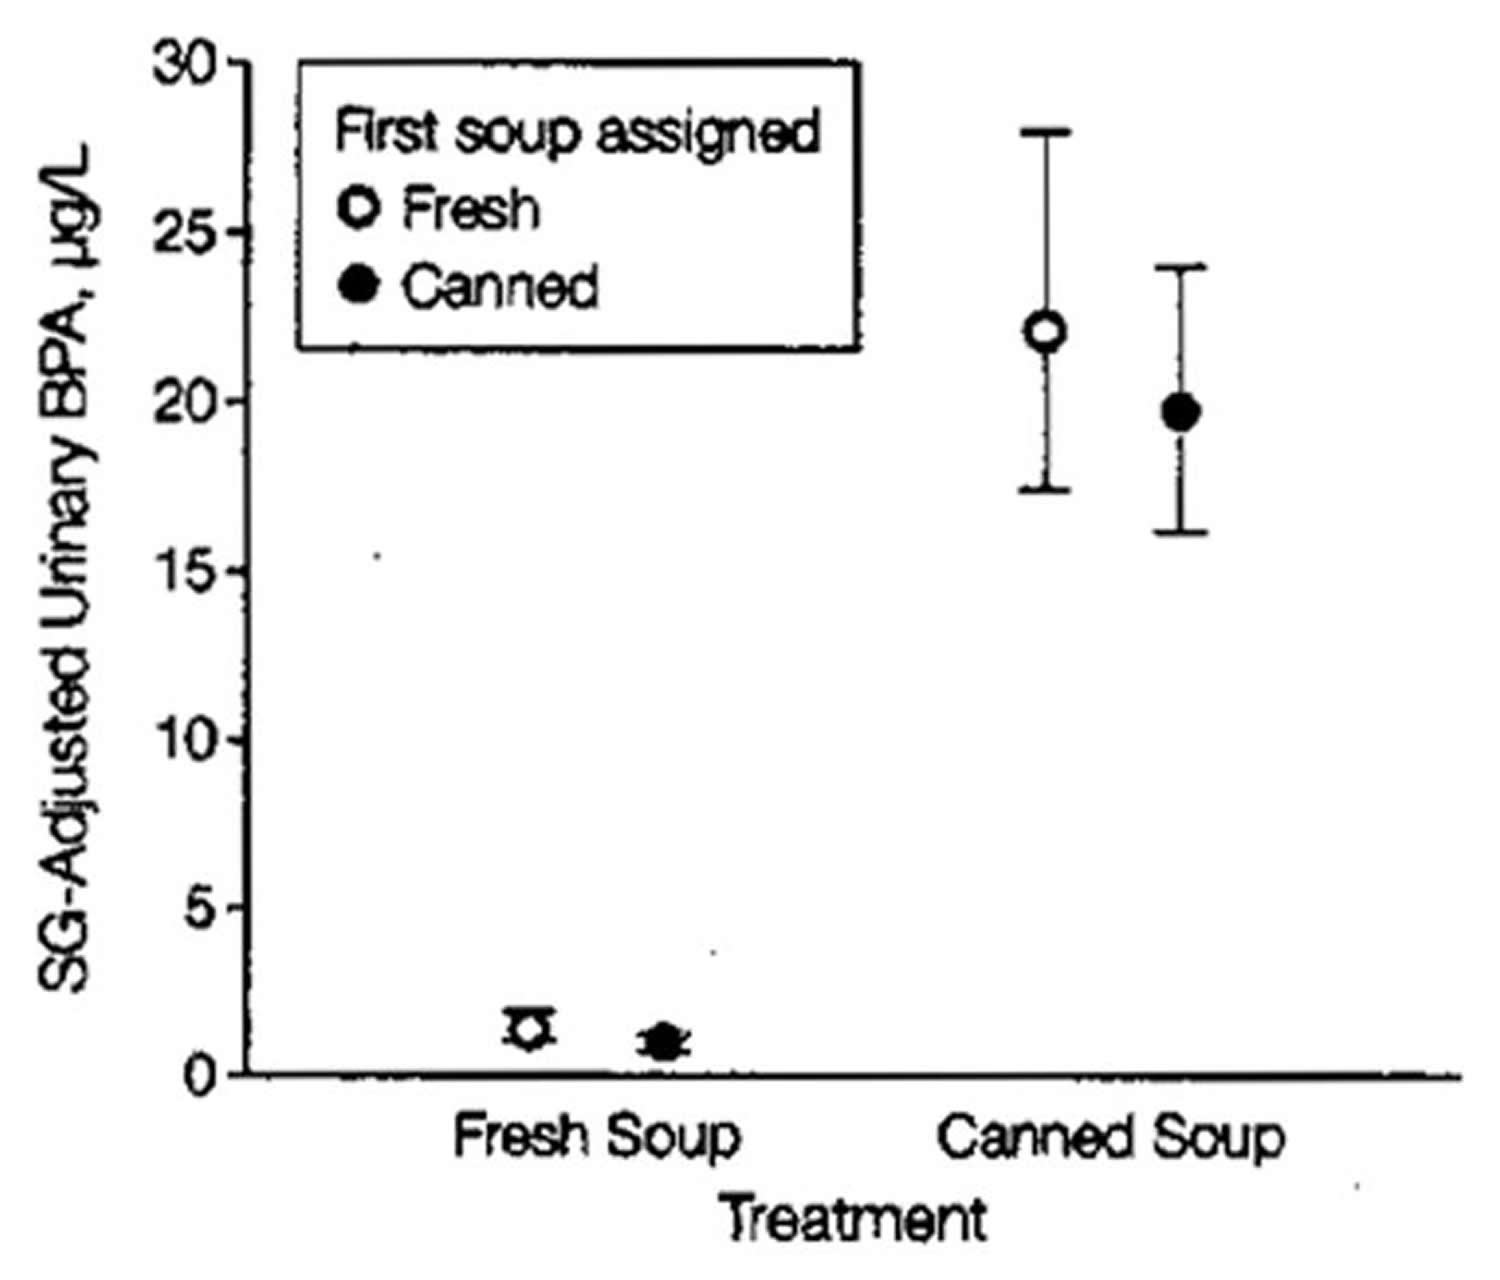 Urinary Bisphenol A Concentration After a Week of Canned Soup Consumption